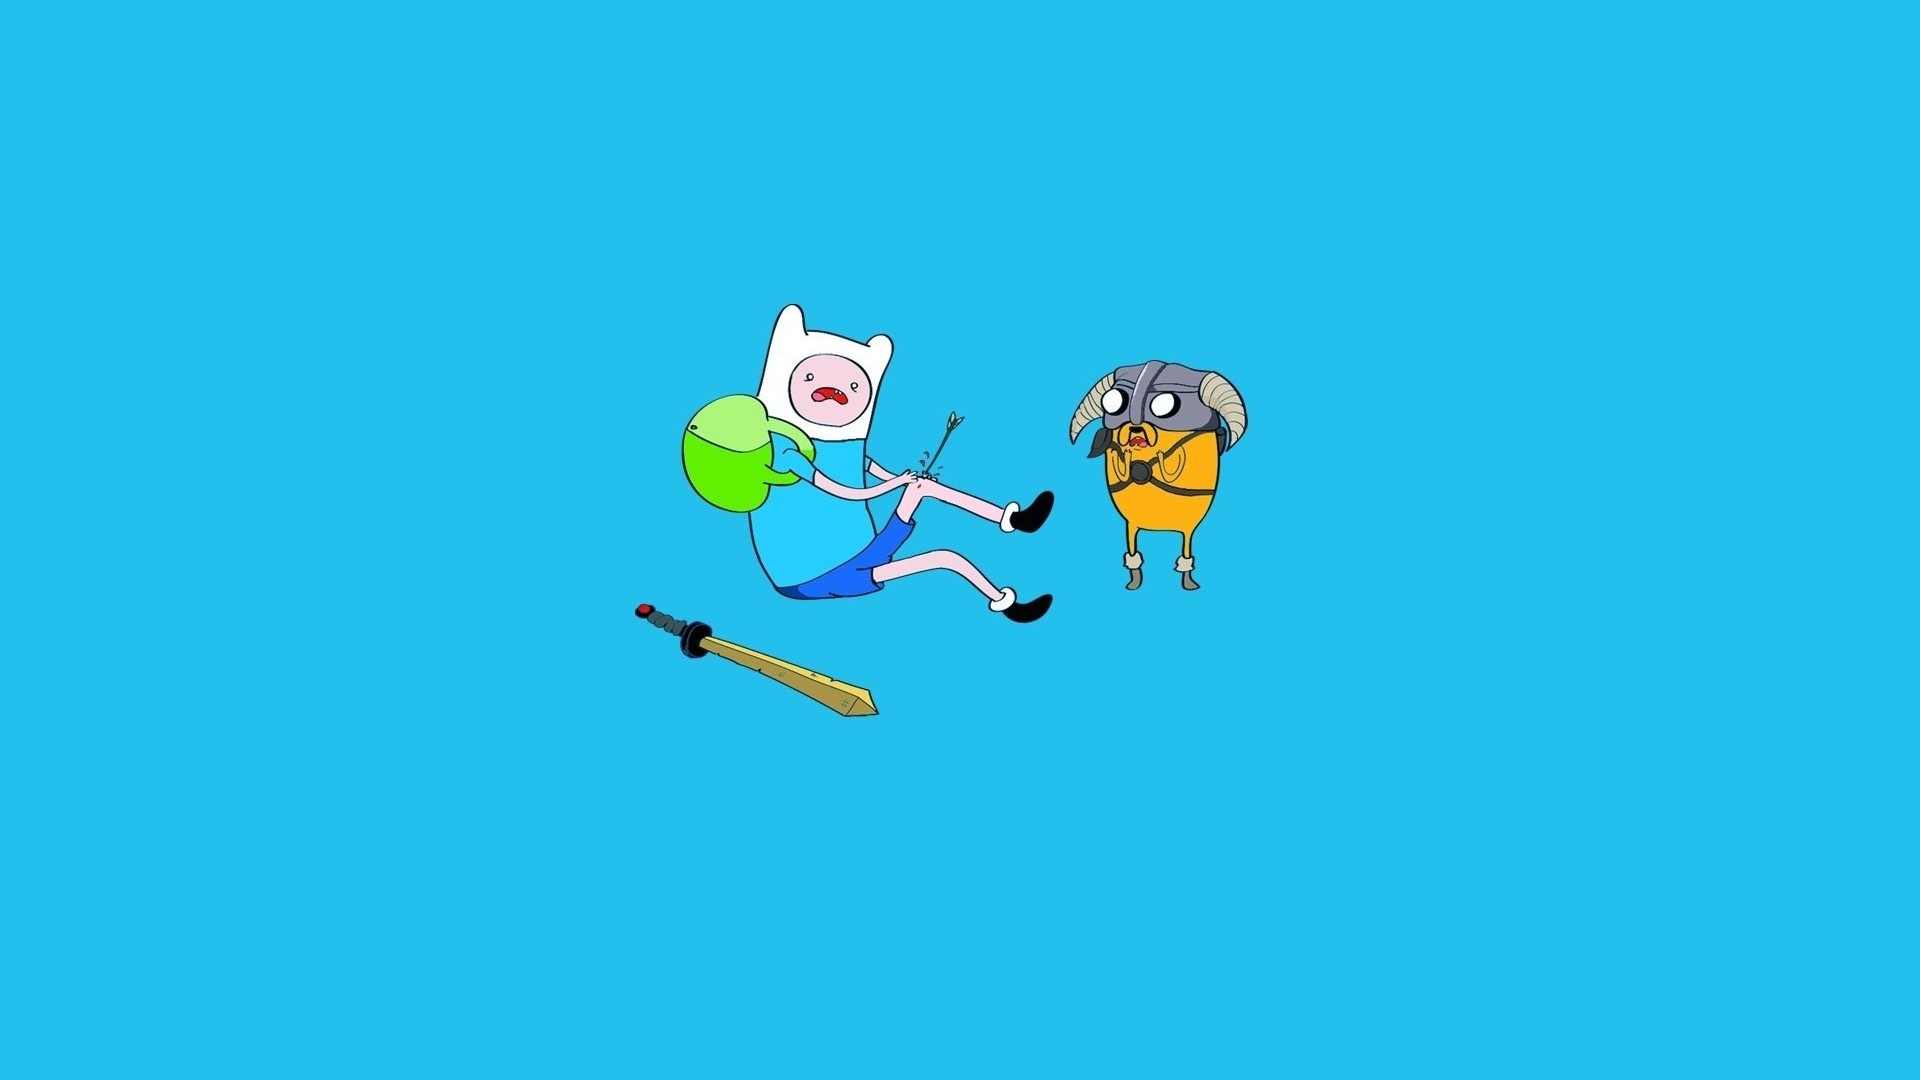 adventure time wallpapers download - photo #19